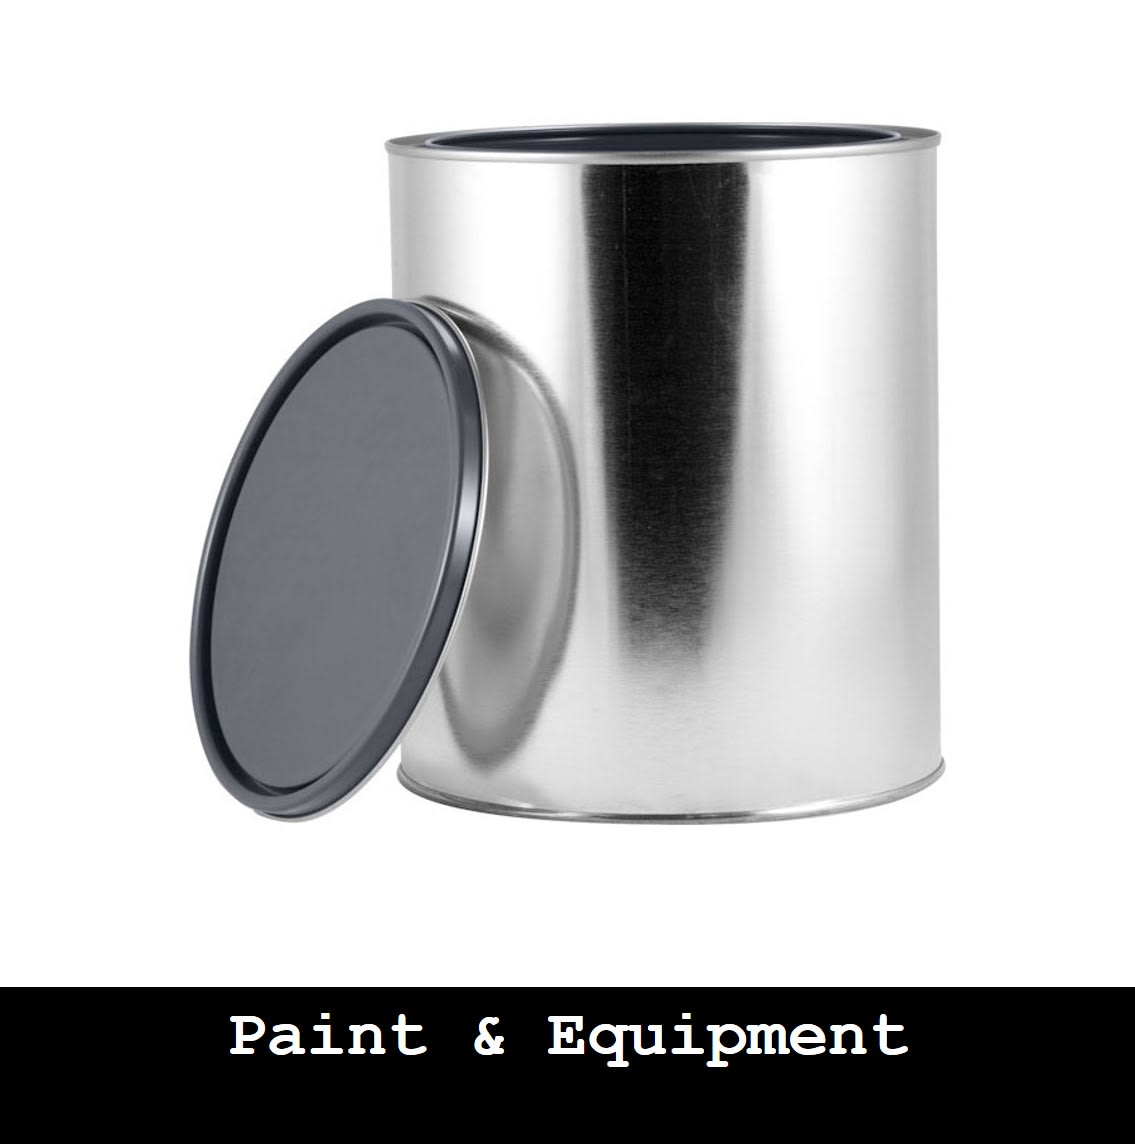 Paint & Equipment | Smith Industrial Supply | Port Colborne Industrial Supply